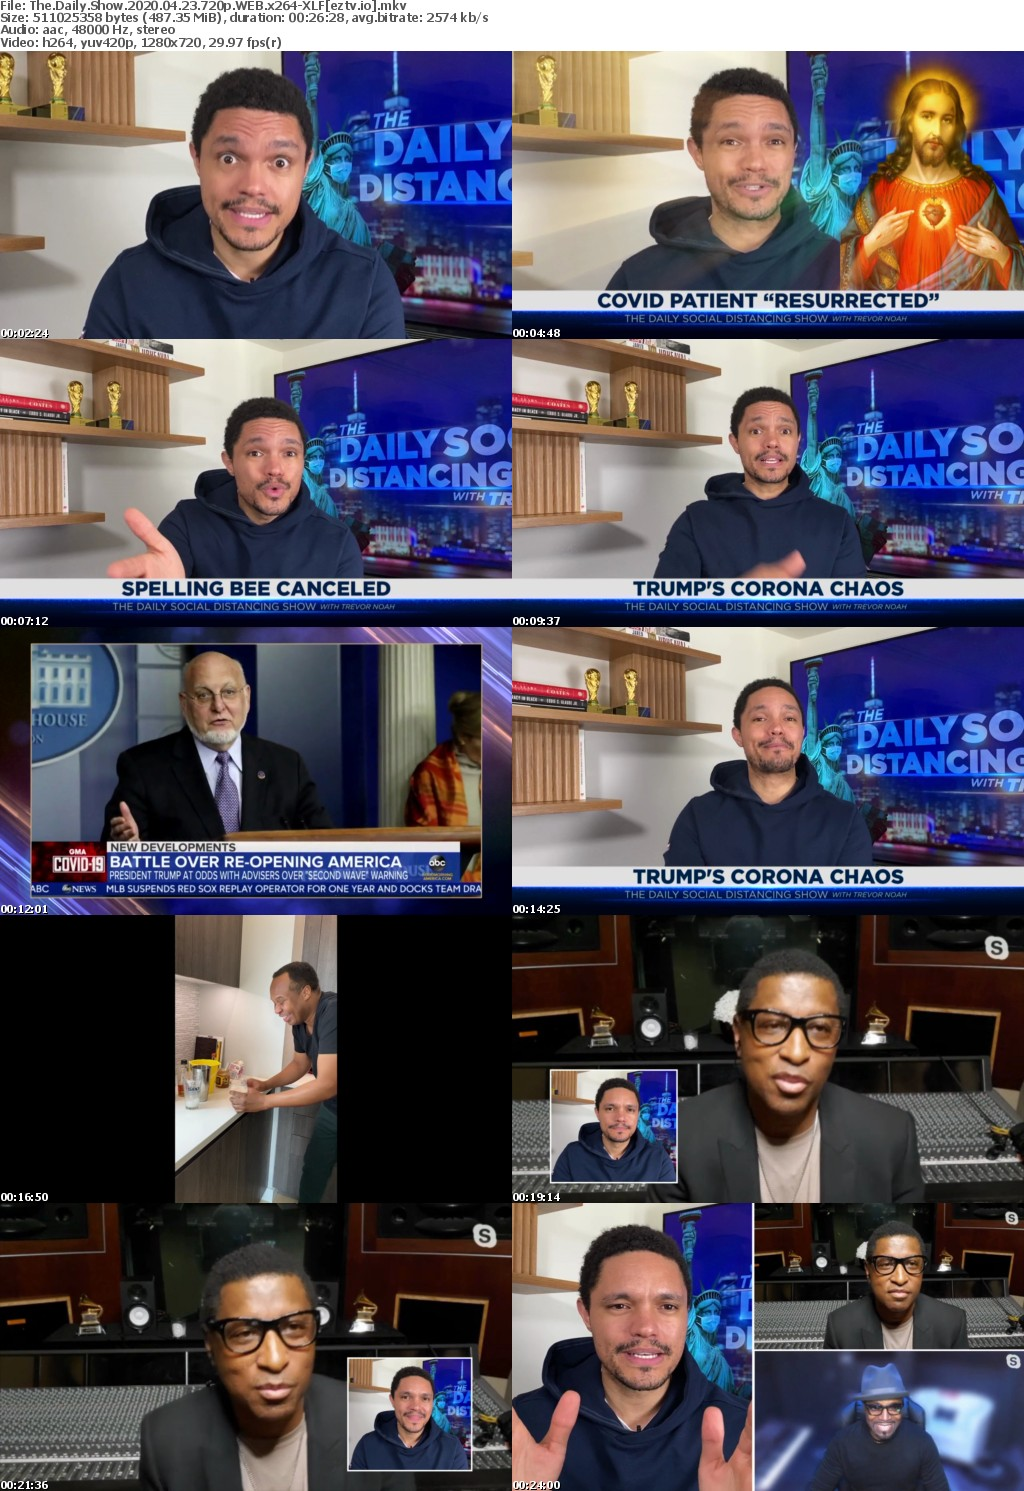 The Daily Show 2020 04 23 720p WEB x264-XLF